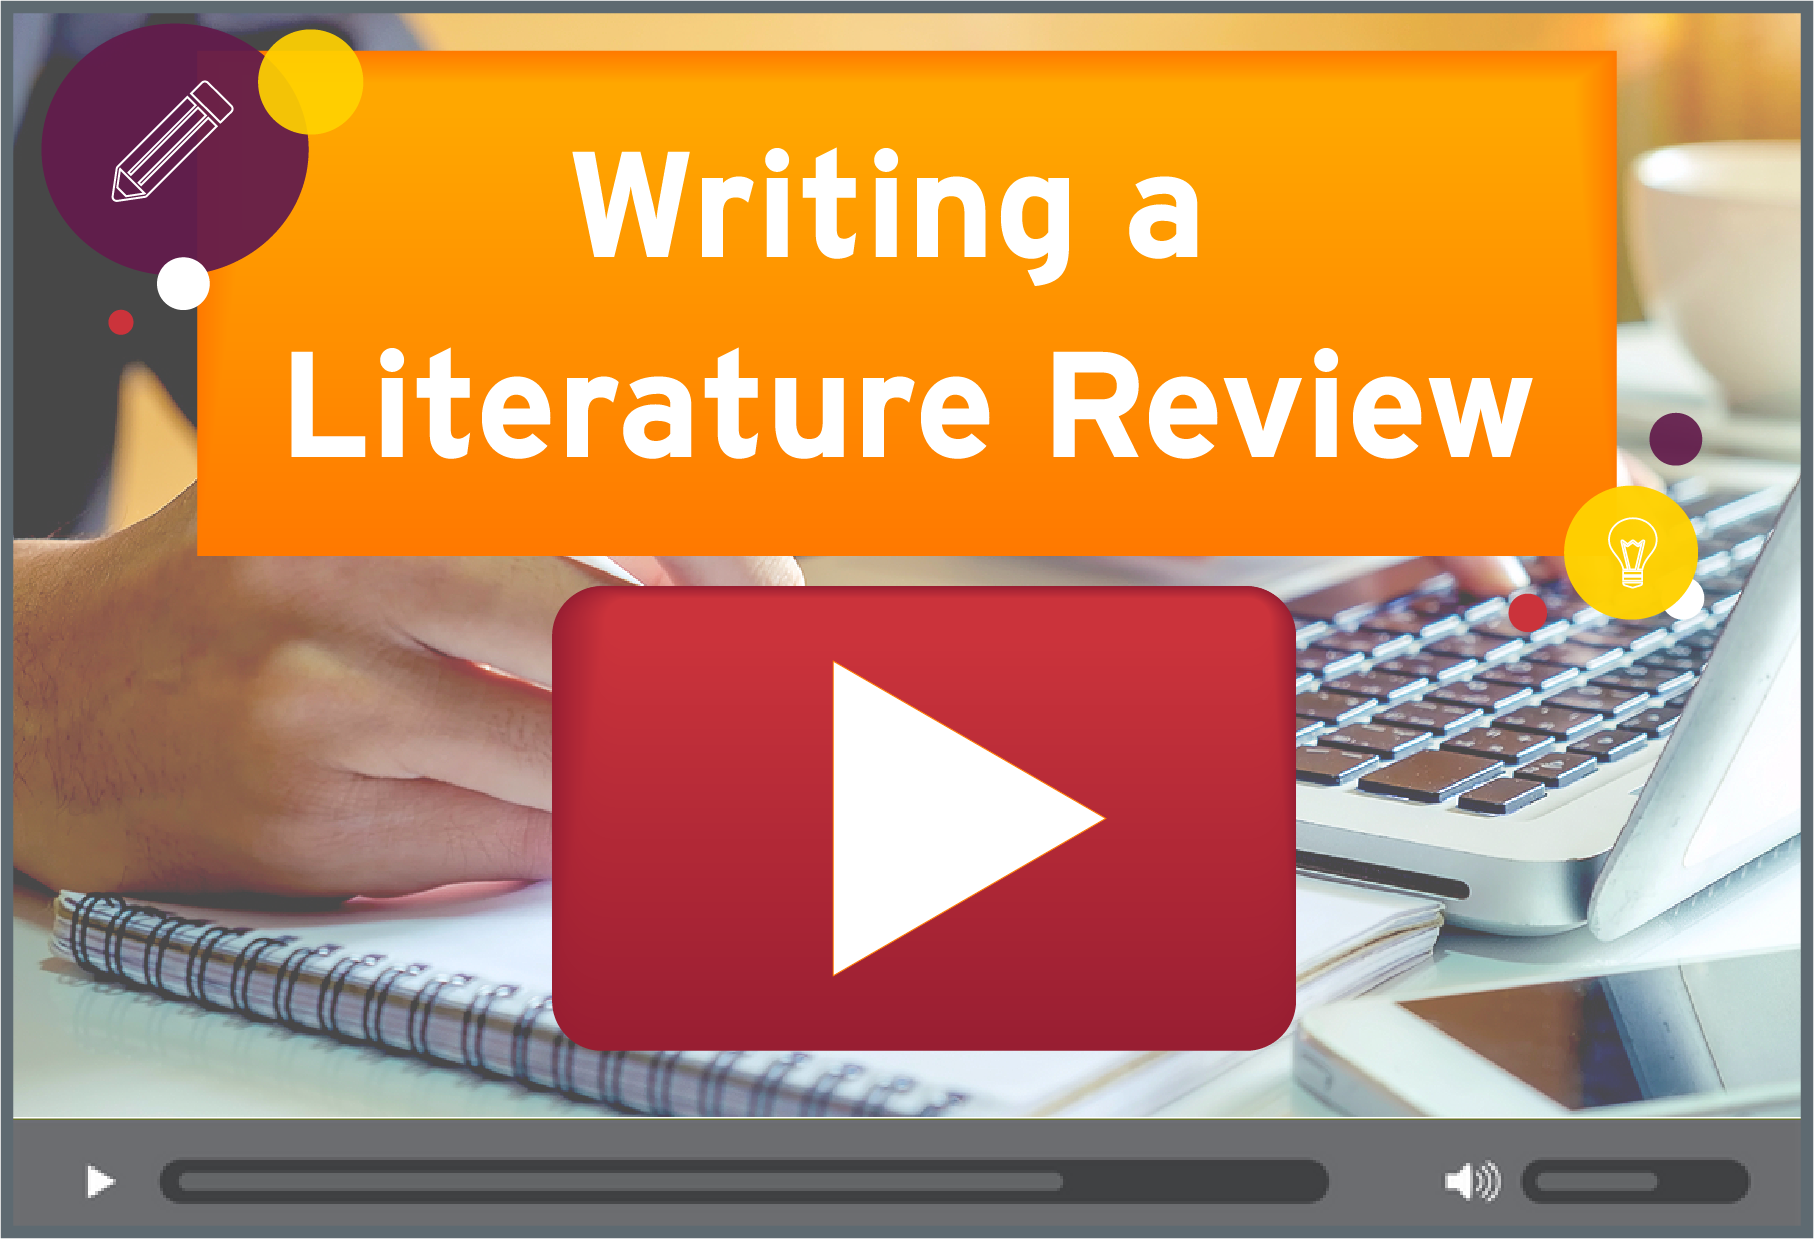 Writing a Literature Review Video Tutorial.